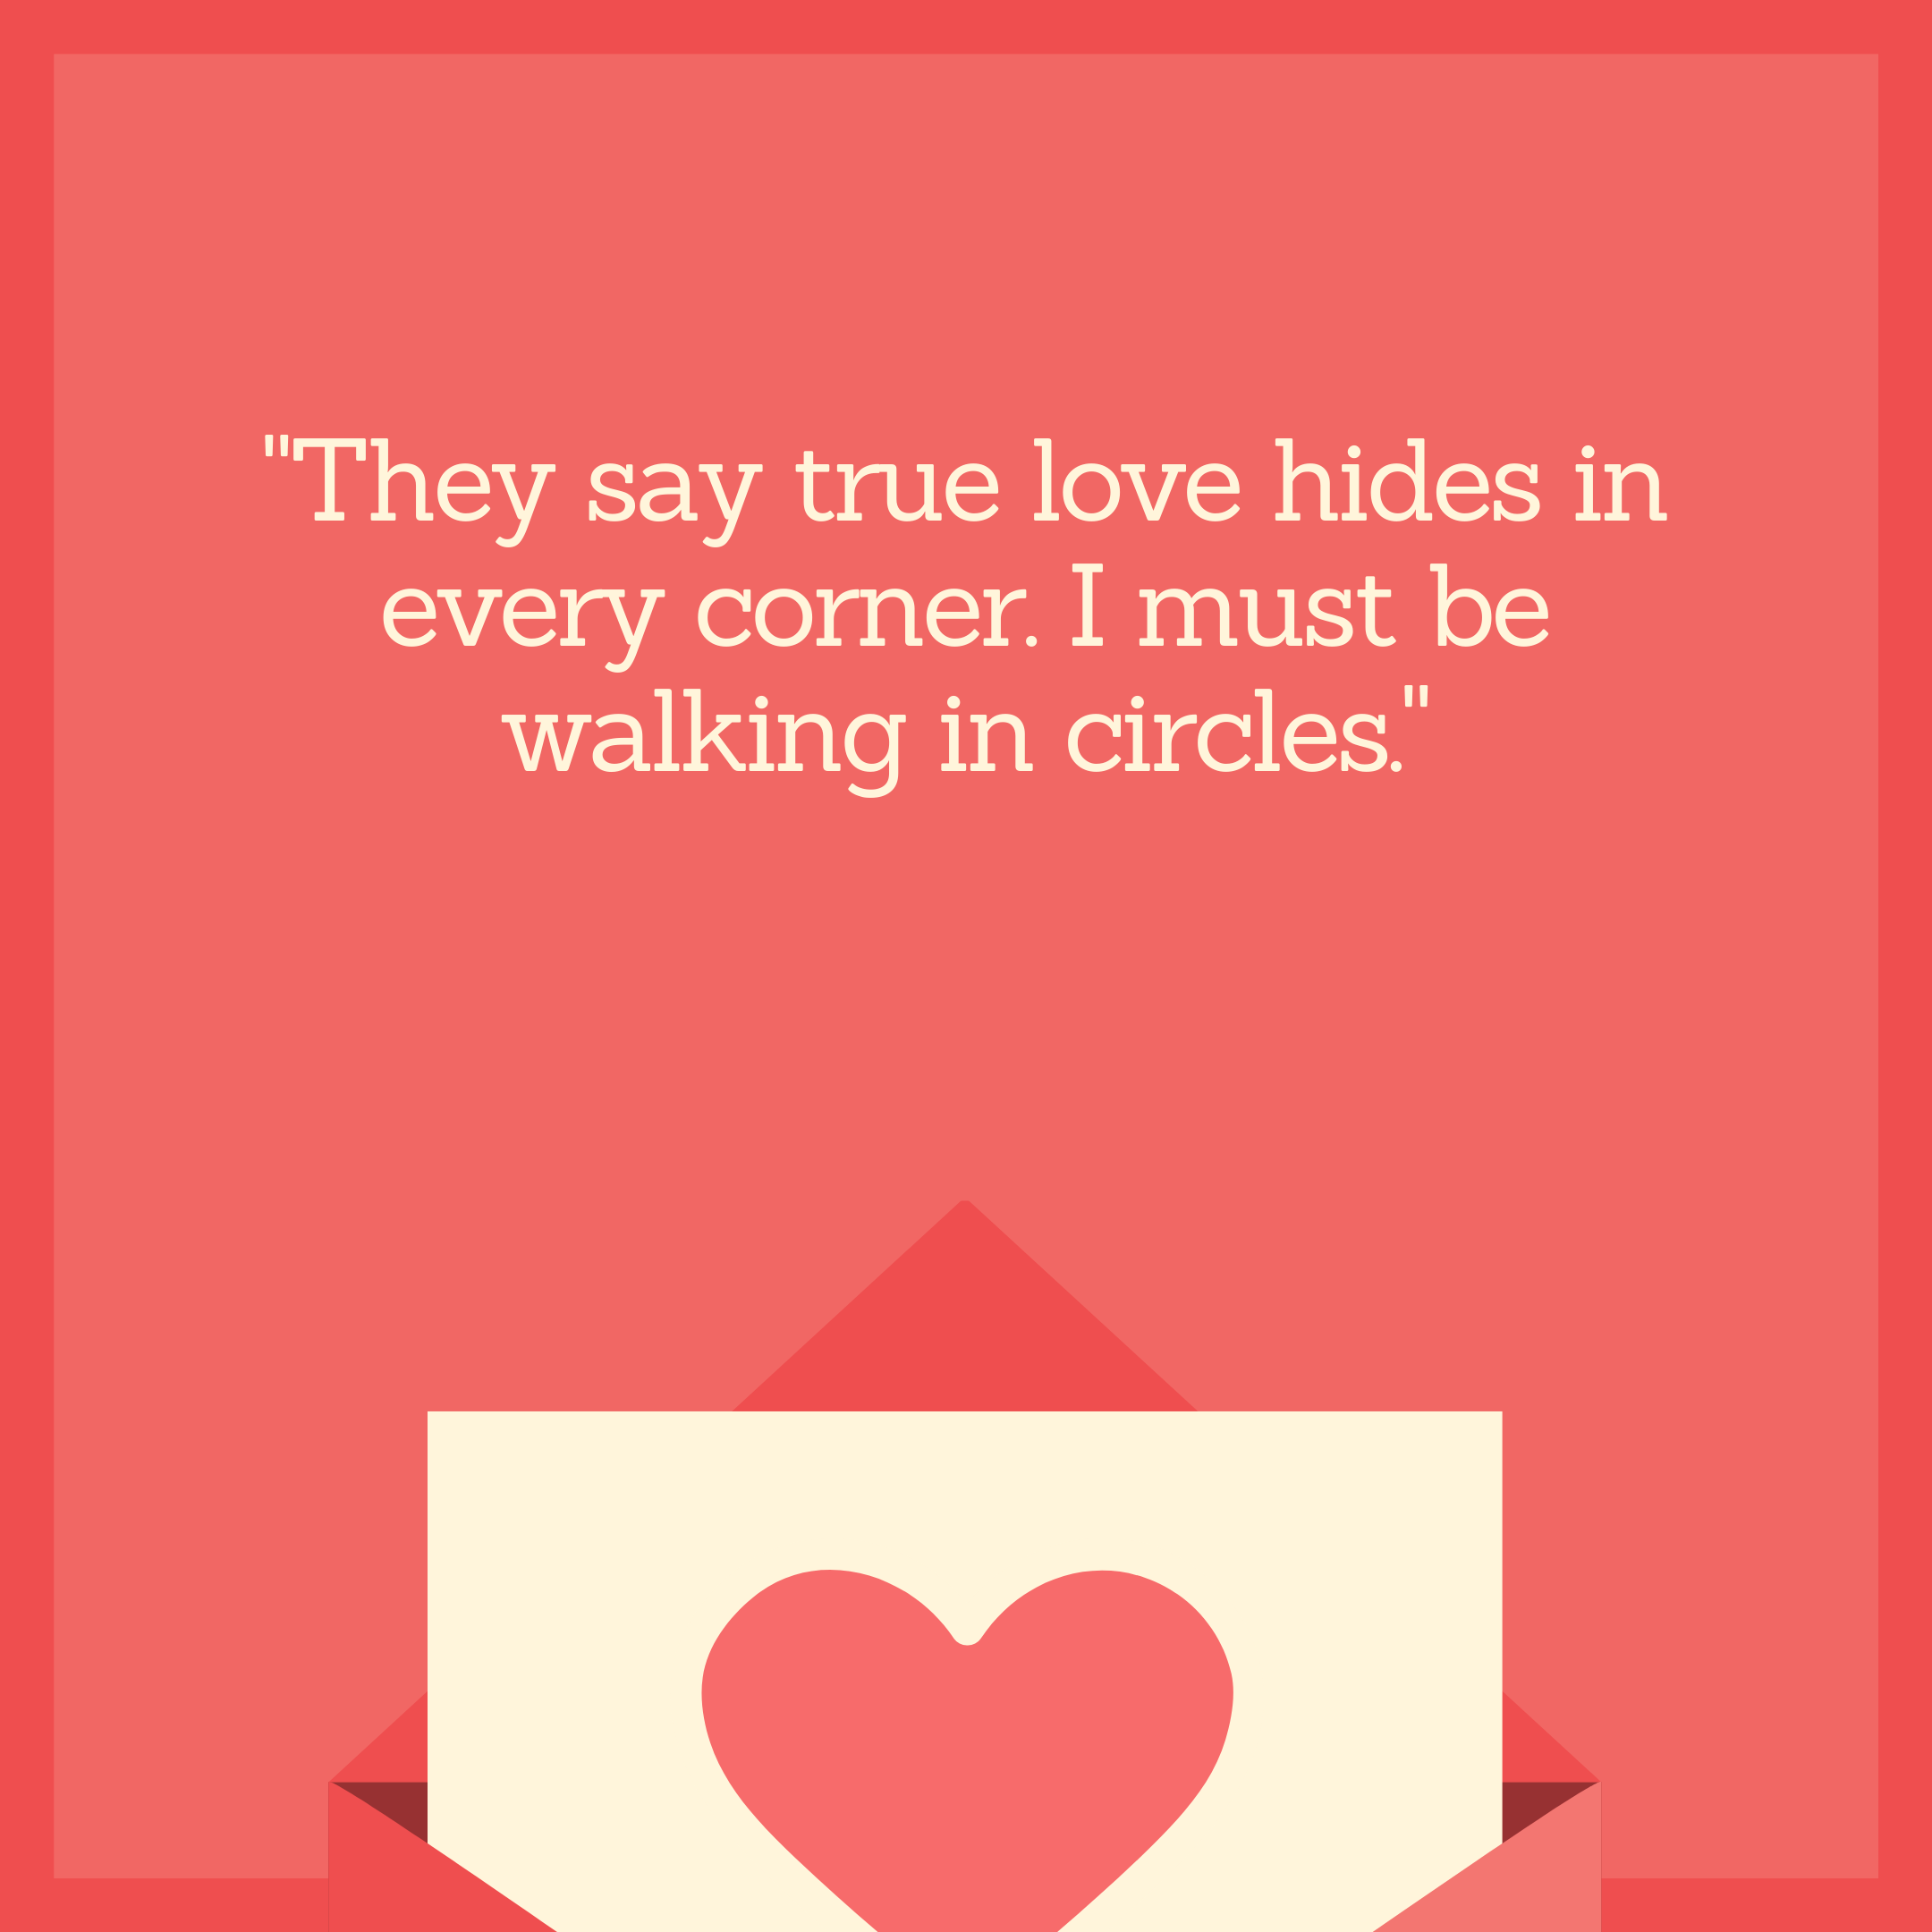 """They say true love hides in every corner. I must be walking in circles."""